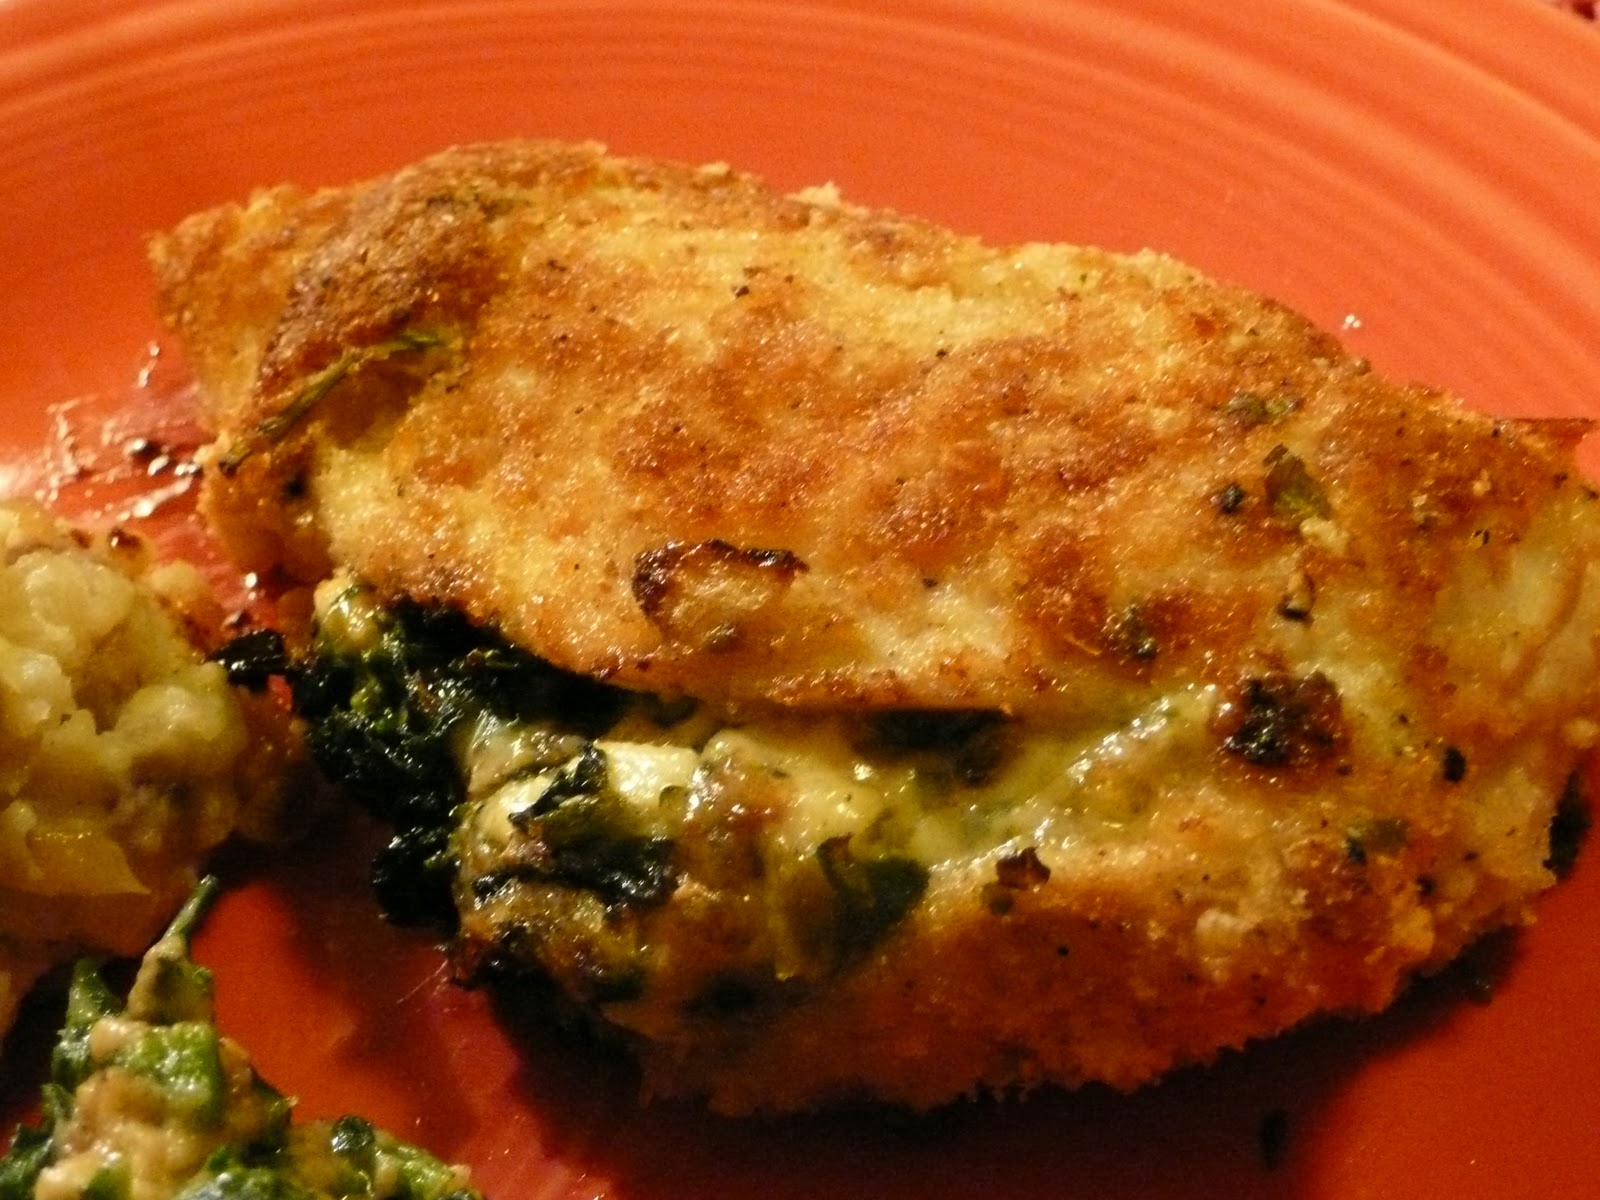 FROM A WRITER'S KITCHEN: Cheese and Spinach Stuffed Chicken Breasts